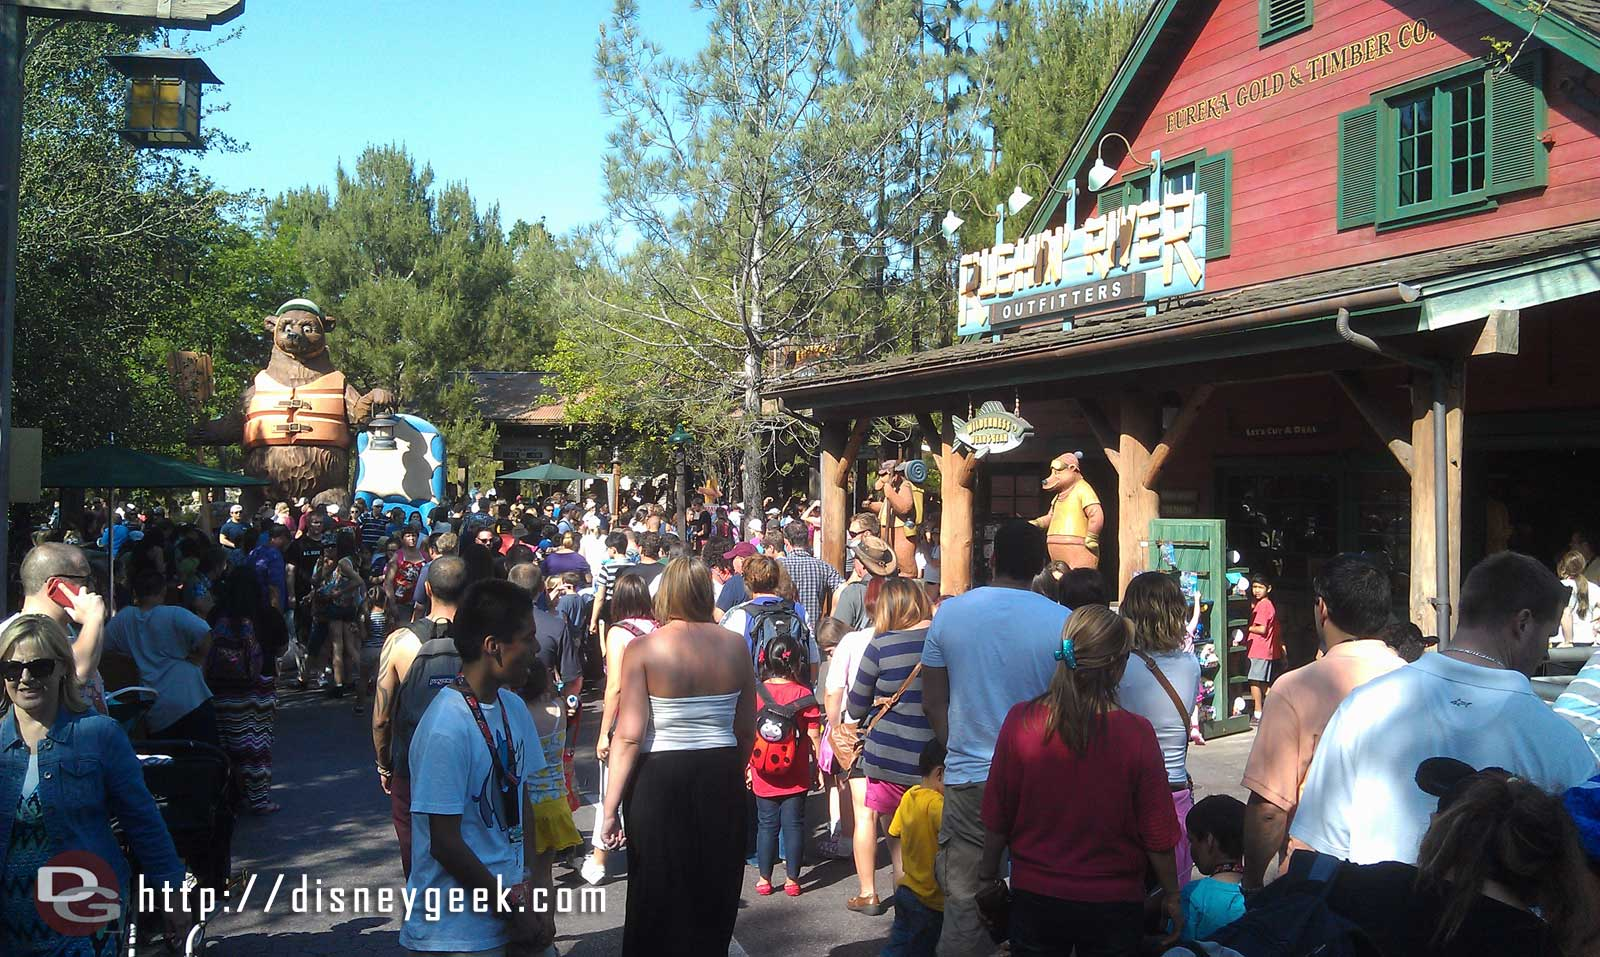 The Fastpass return line for GRR spilled out to the walkway and backed up past the shop.  Standby posted at 55 min